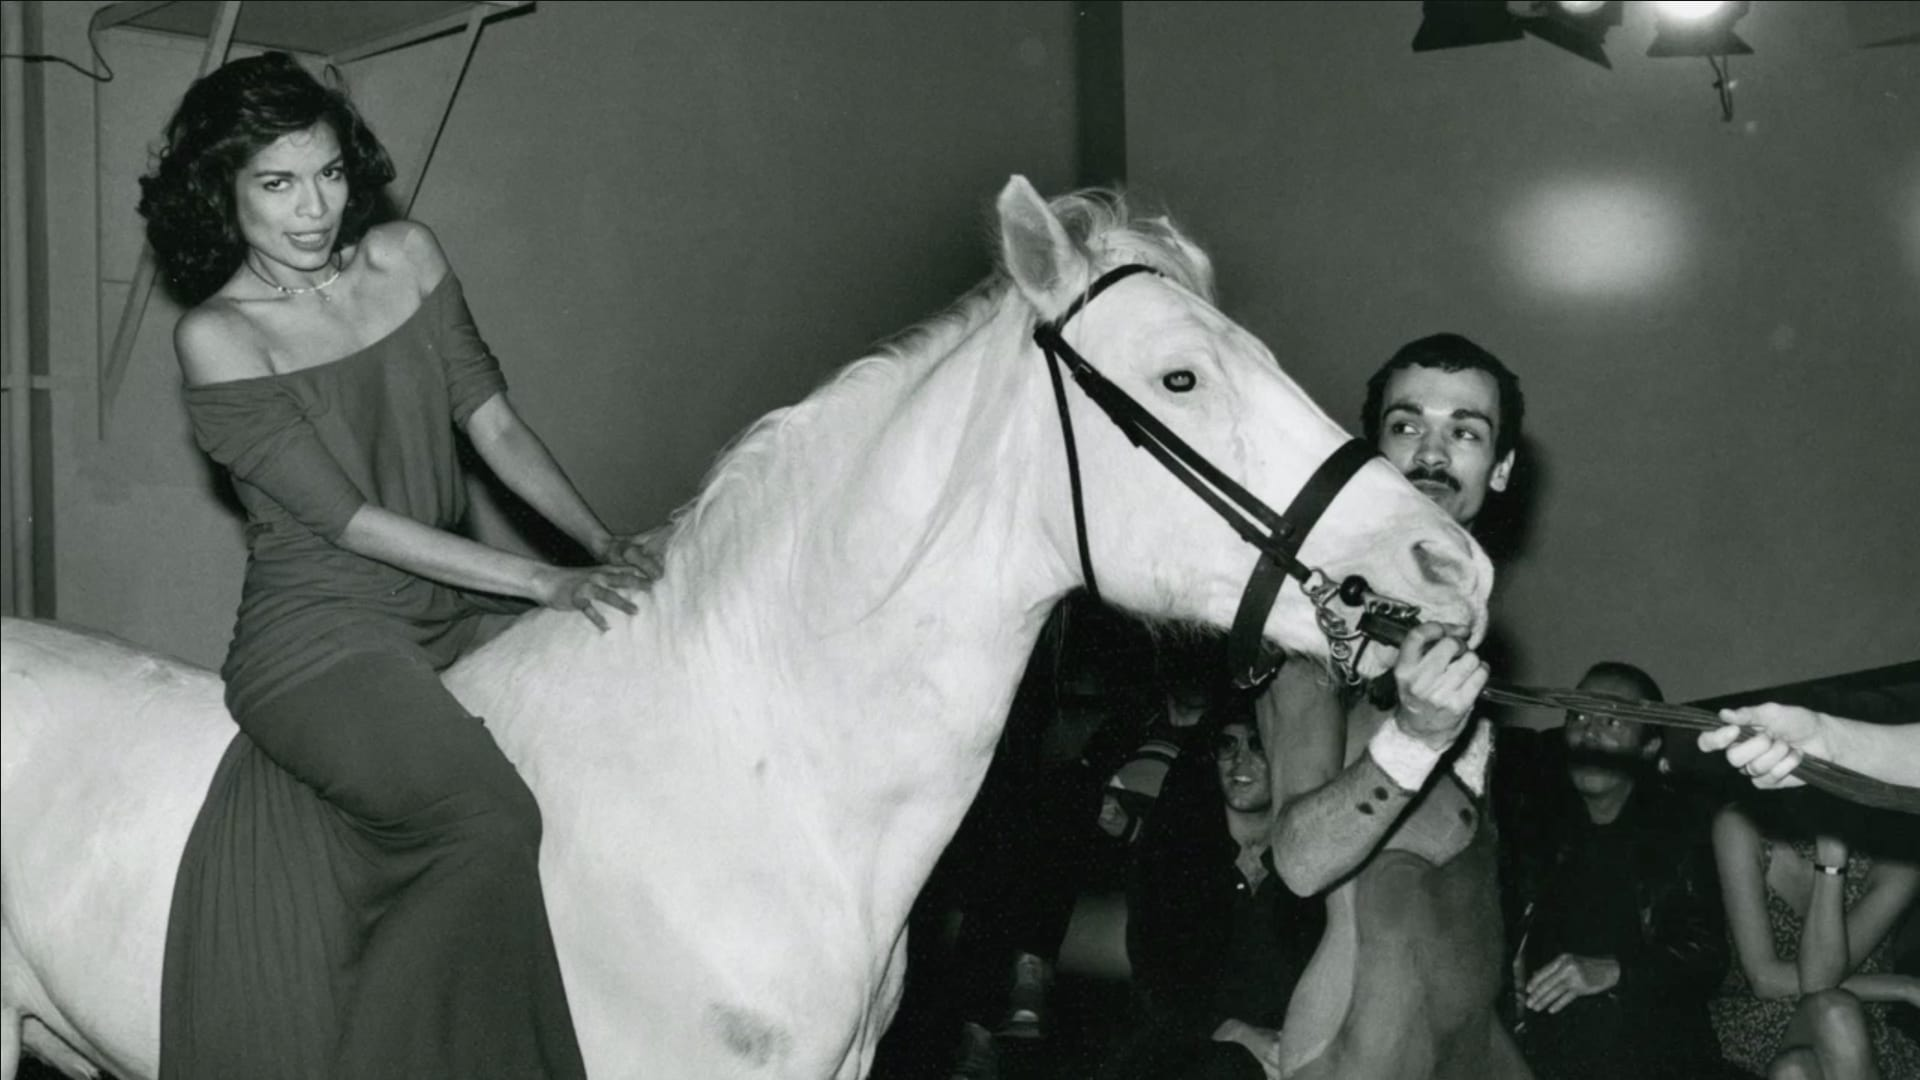 Bianca Jagger rode a white horse across the dance floor  (Getty Images)